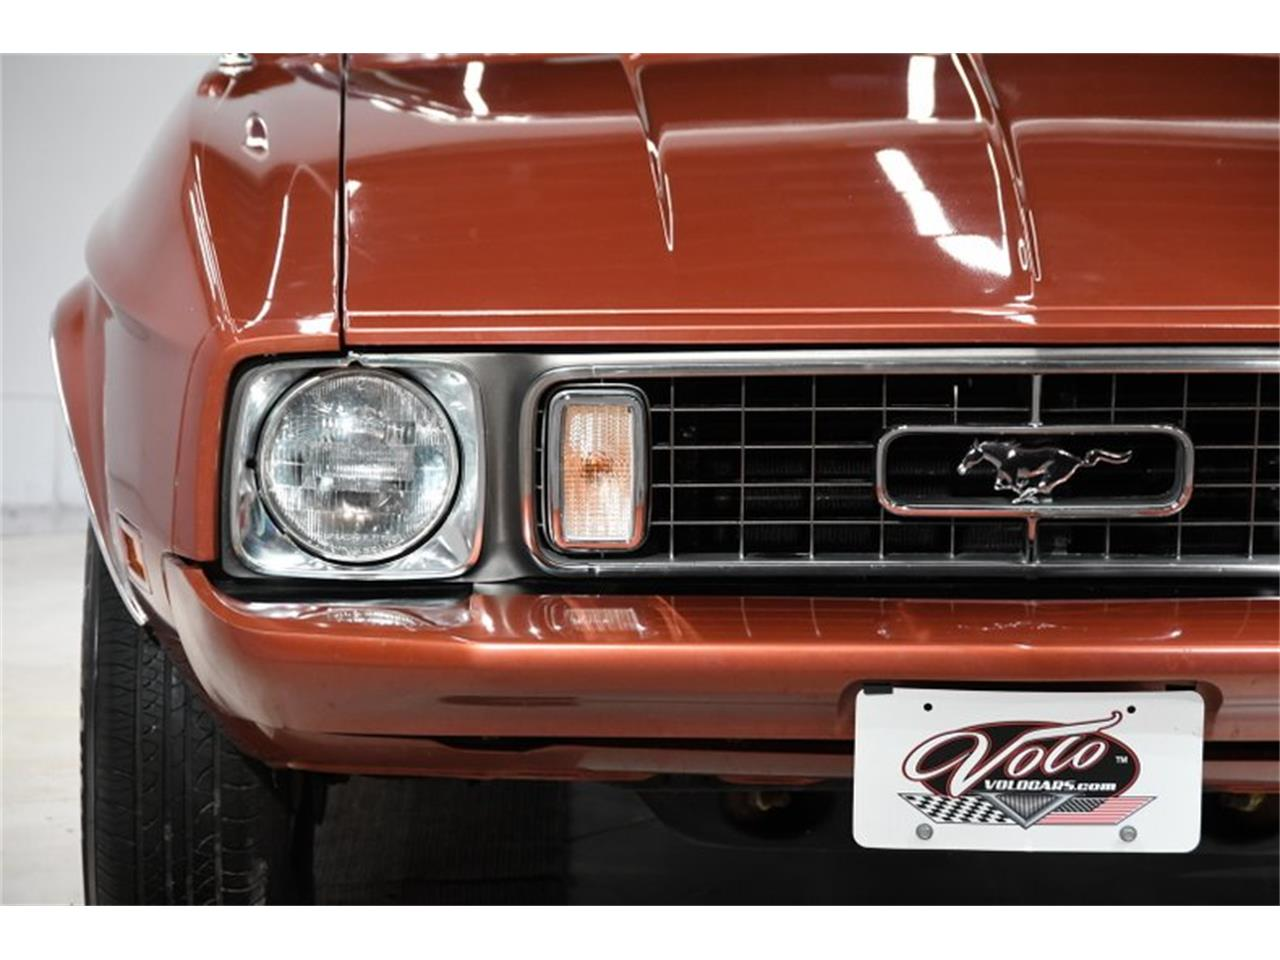 1973 Ford Mustang for sale in Volo, IL – photo 45